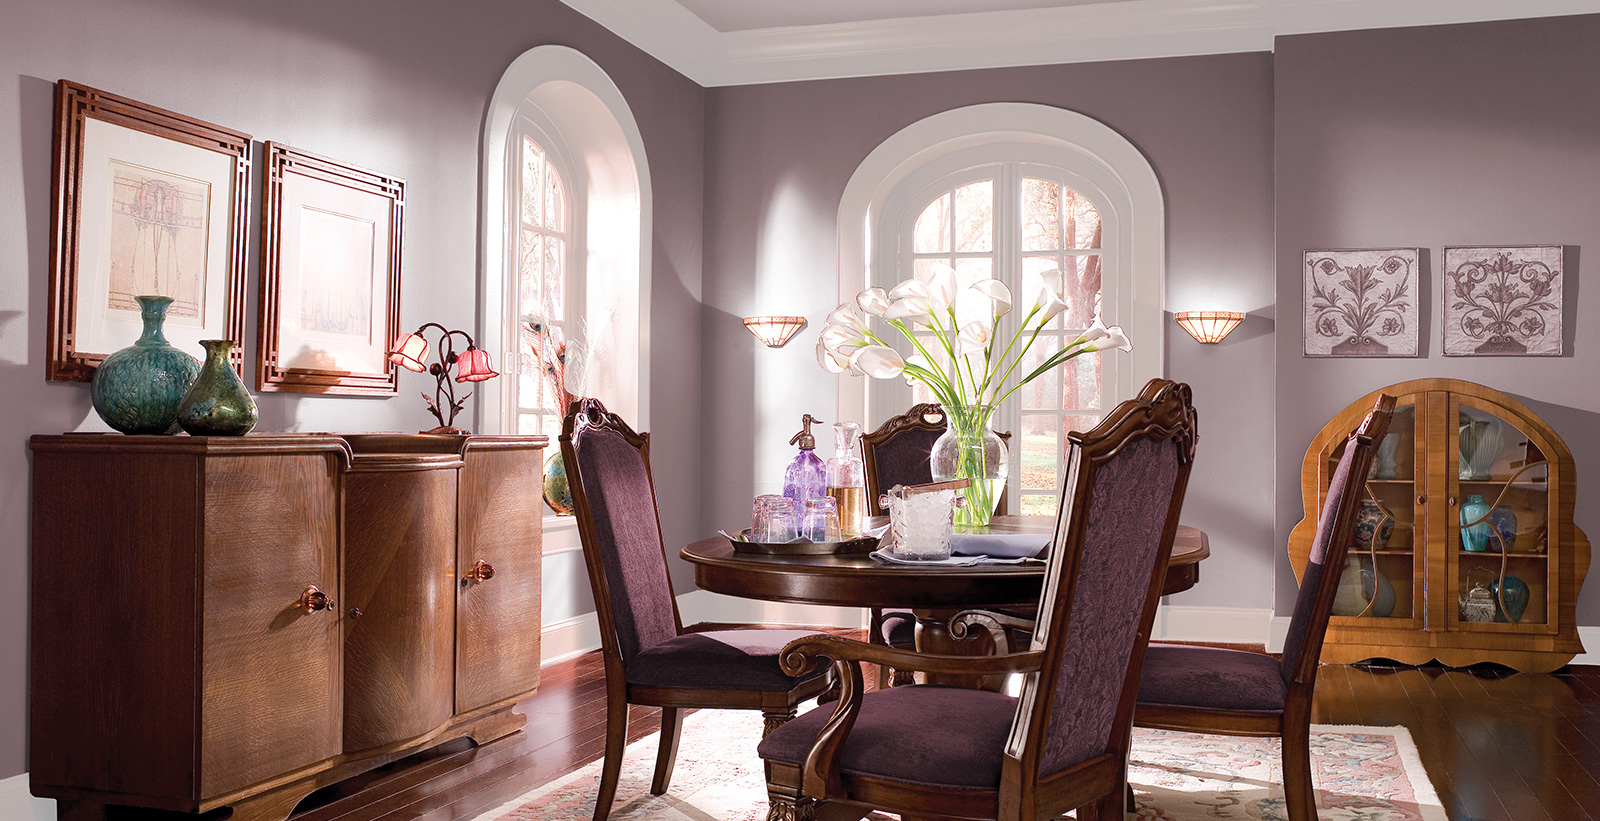 Dining room in the Art Nouveau style with mauve paint on walls, white paint on trim and pale gray on arched window trim.